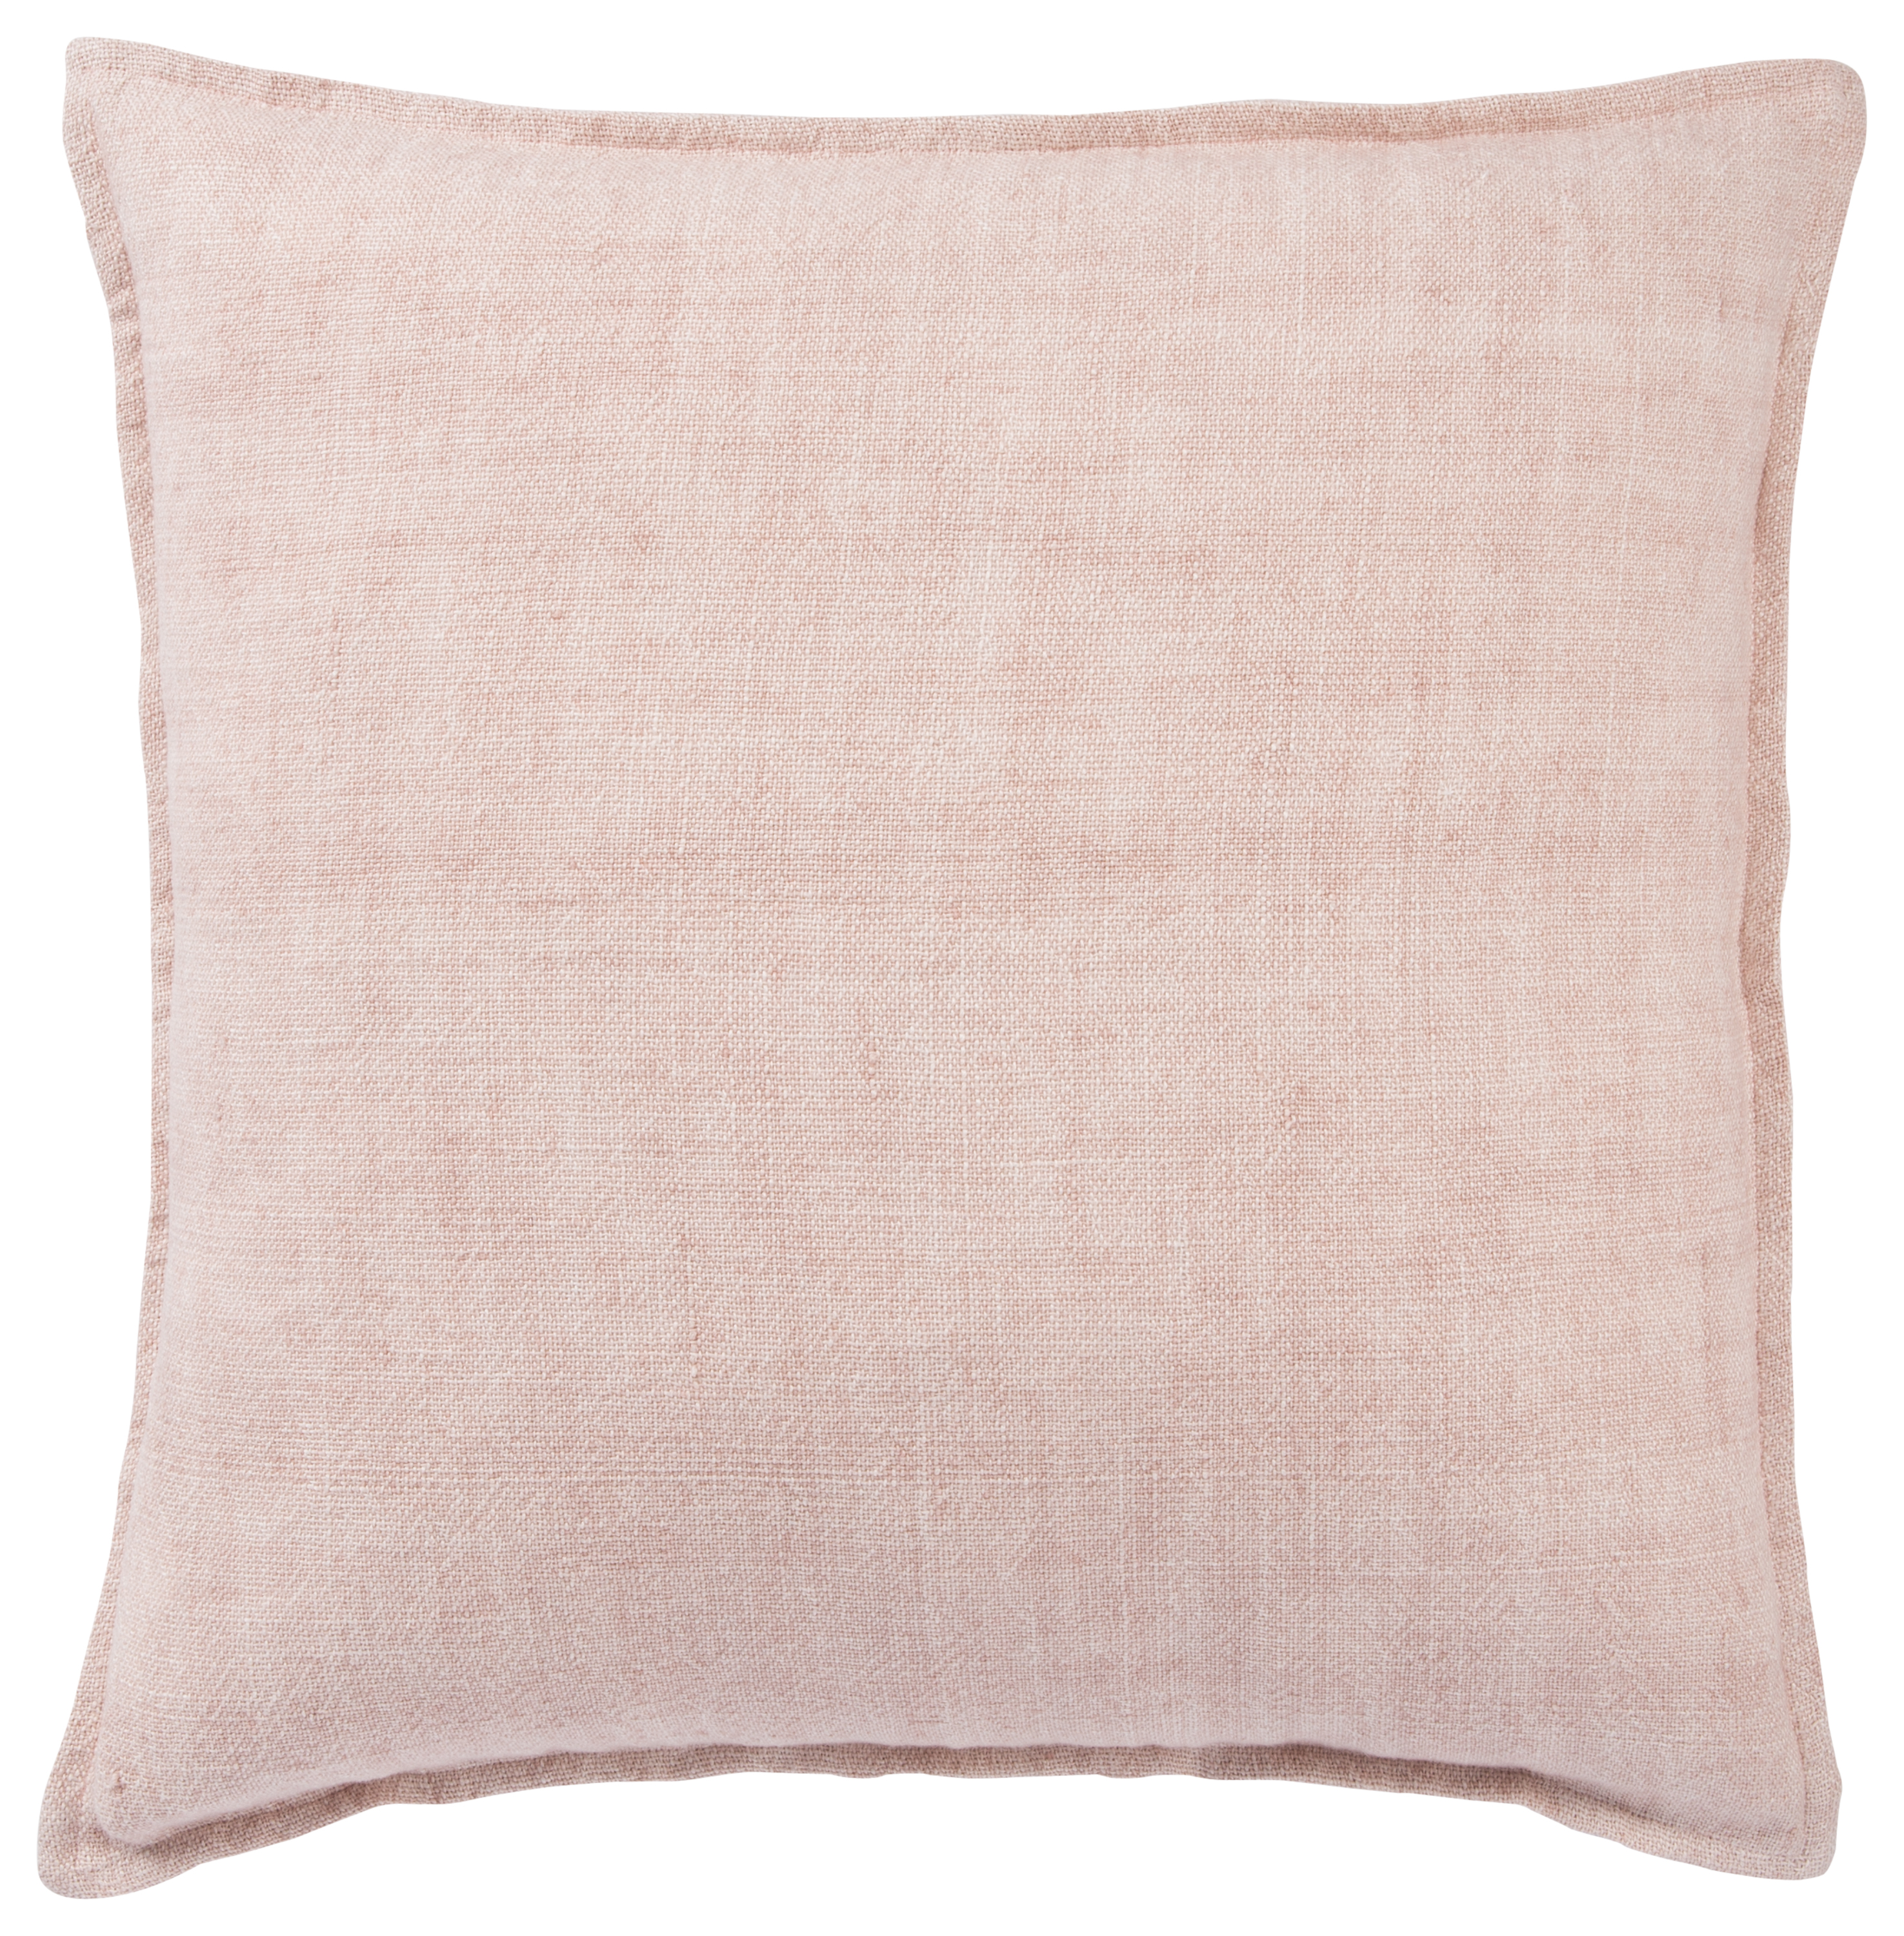 Jaipur Living Blanche Solid Light Pink Poly Throw Pillow